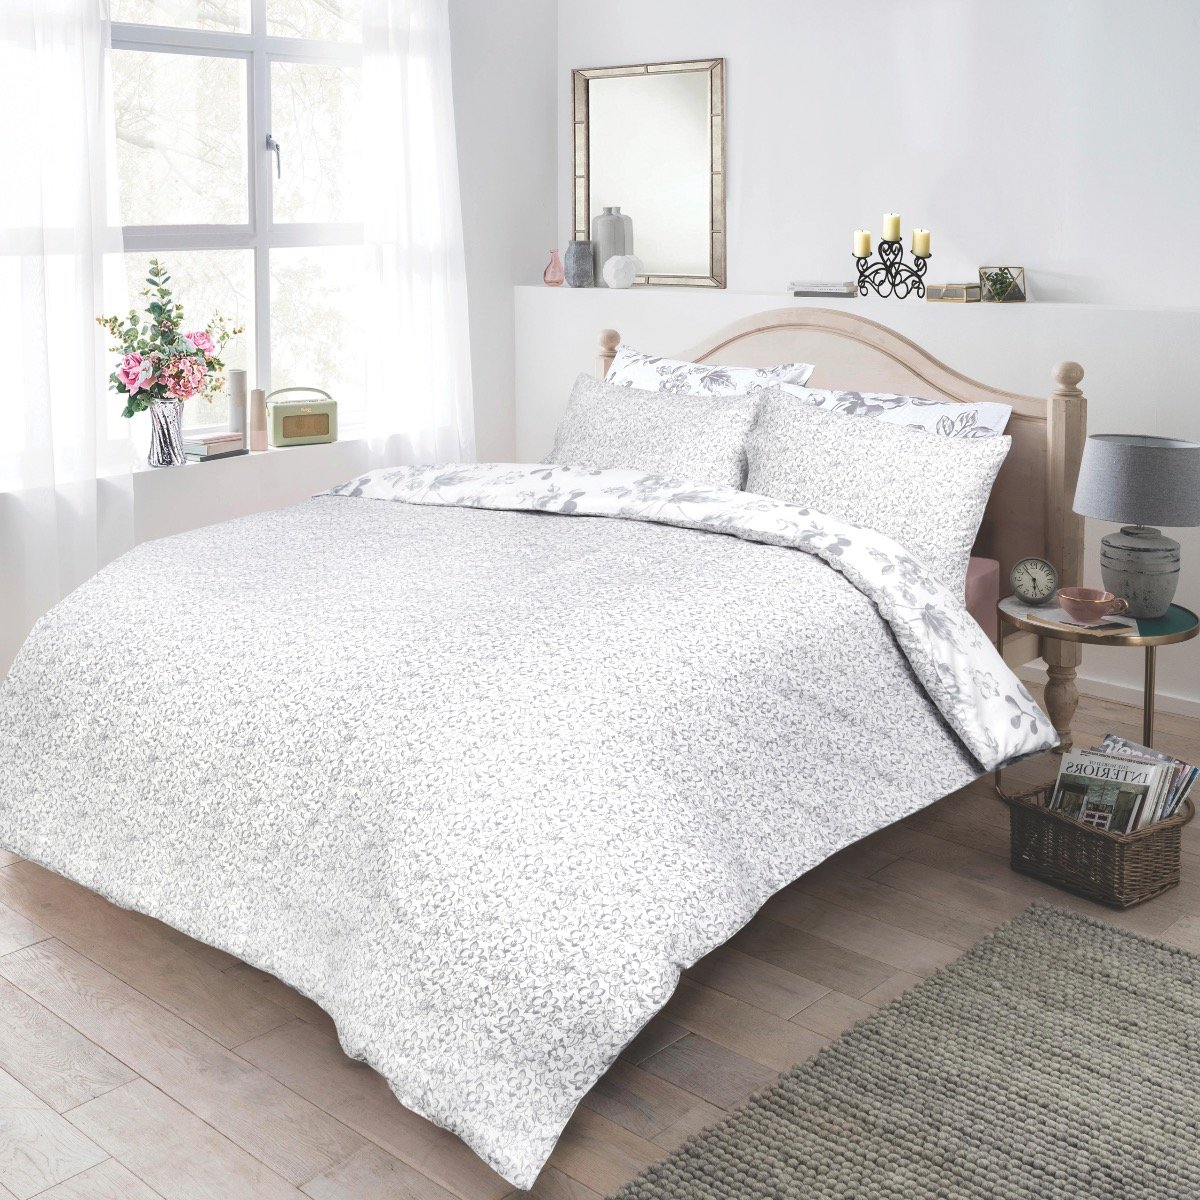 Monochrome Floral Bedding - Reversible Duvet Cover and Pillowcase Set